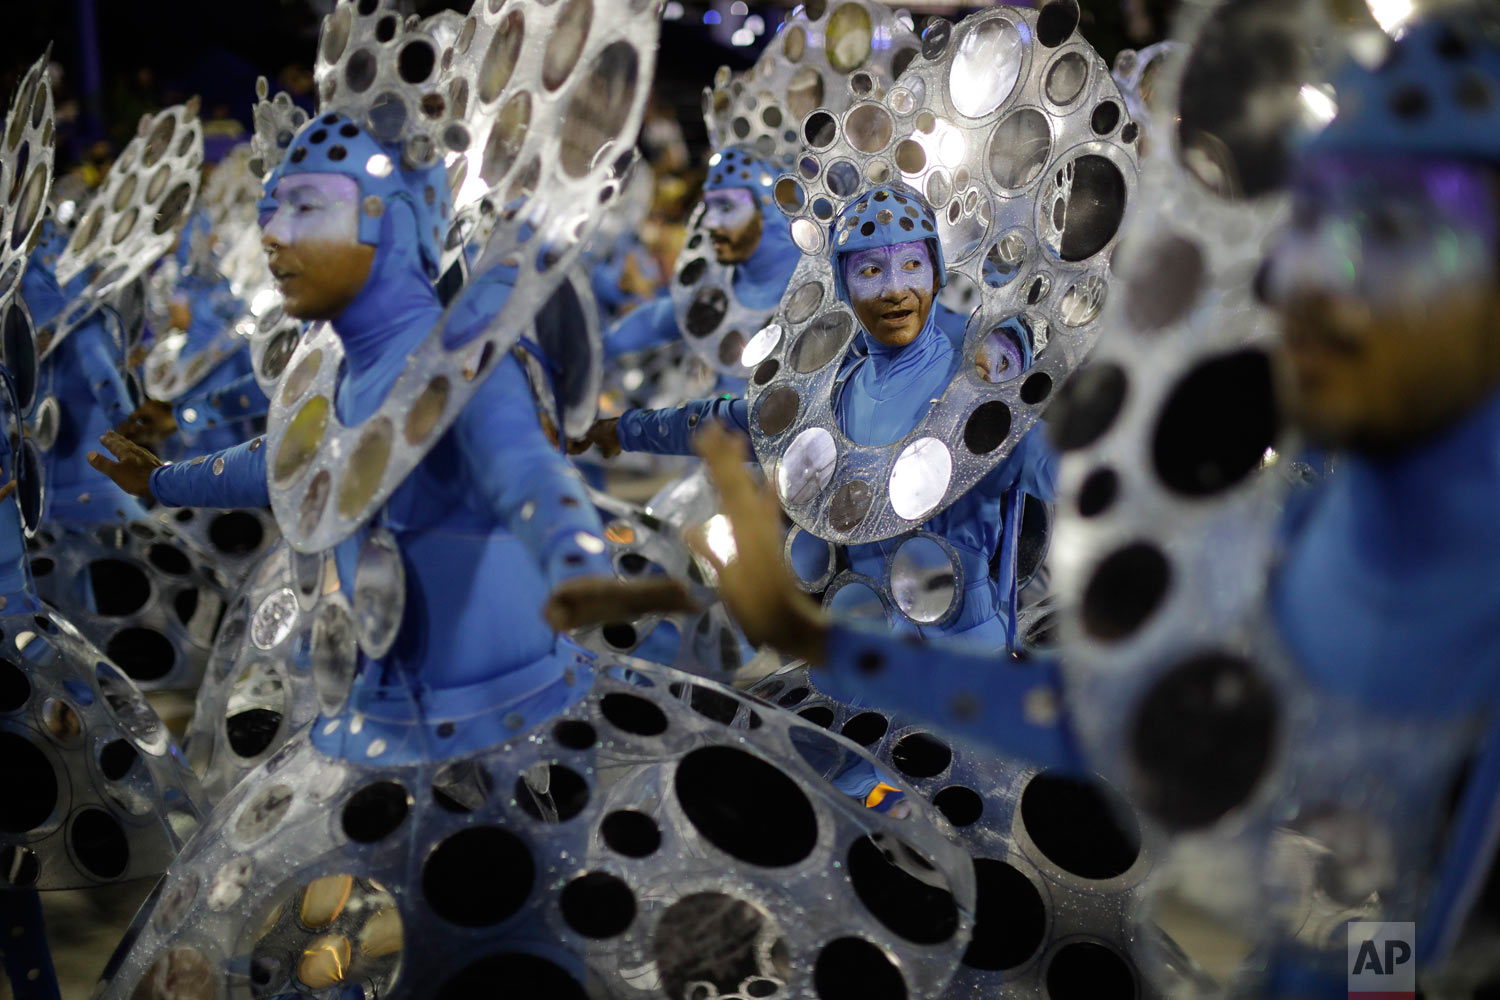 Performers from the Portela samba school parade during Carnival celebrations at the Sambadrome in Rio de Janeiro, Brazil, Monday, Feb. 12, 2018. (AP Photo/Leo Correa)